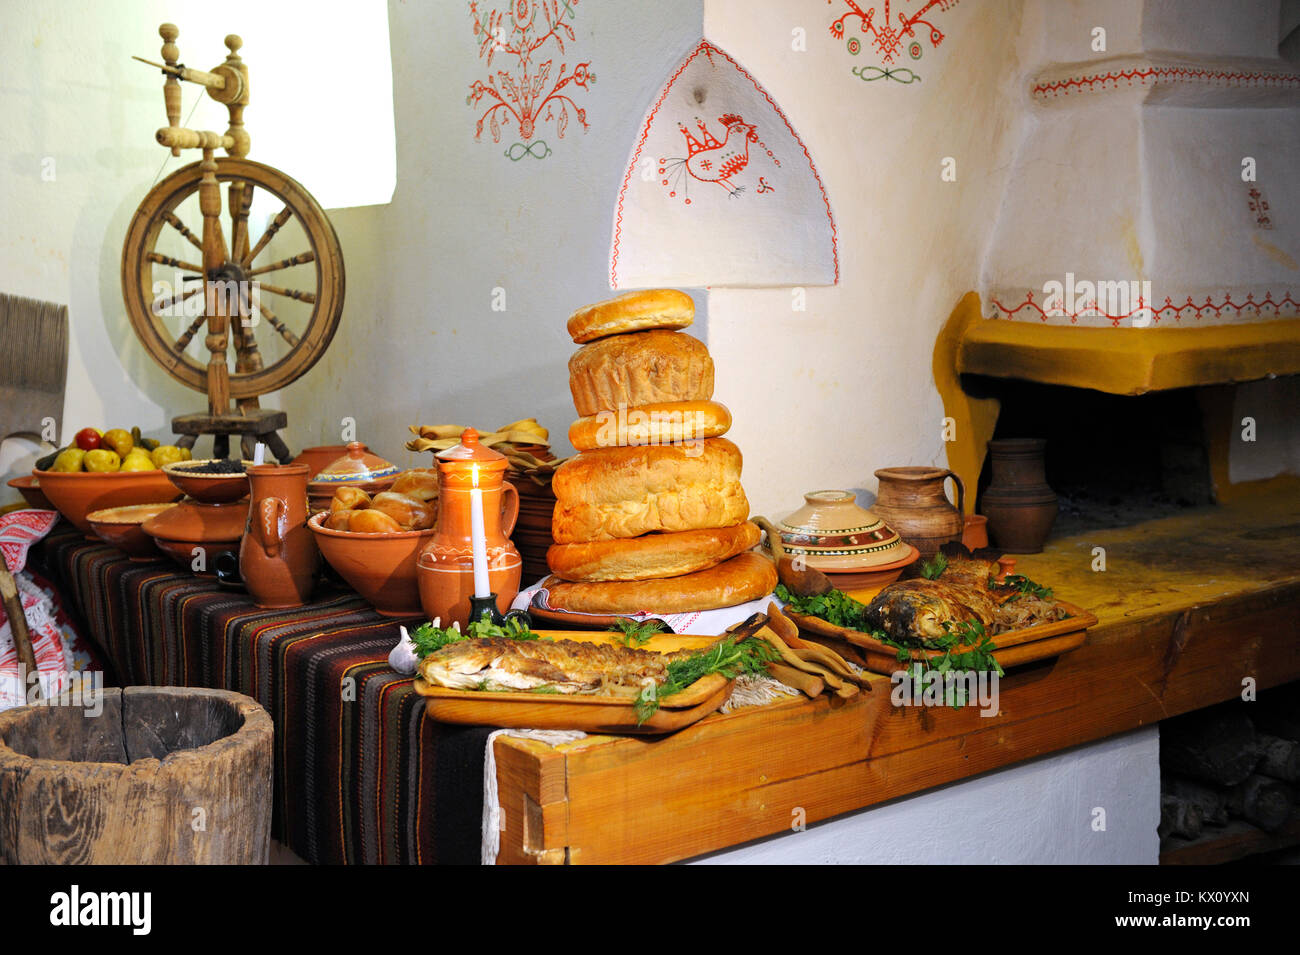 """Traditional Ukrainian food on Christmas Eve: ewer with """"kutia"""", fried fish, garlic and bread placed near stove. Stock Photo"""